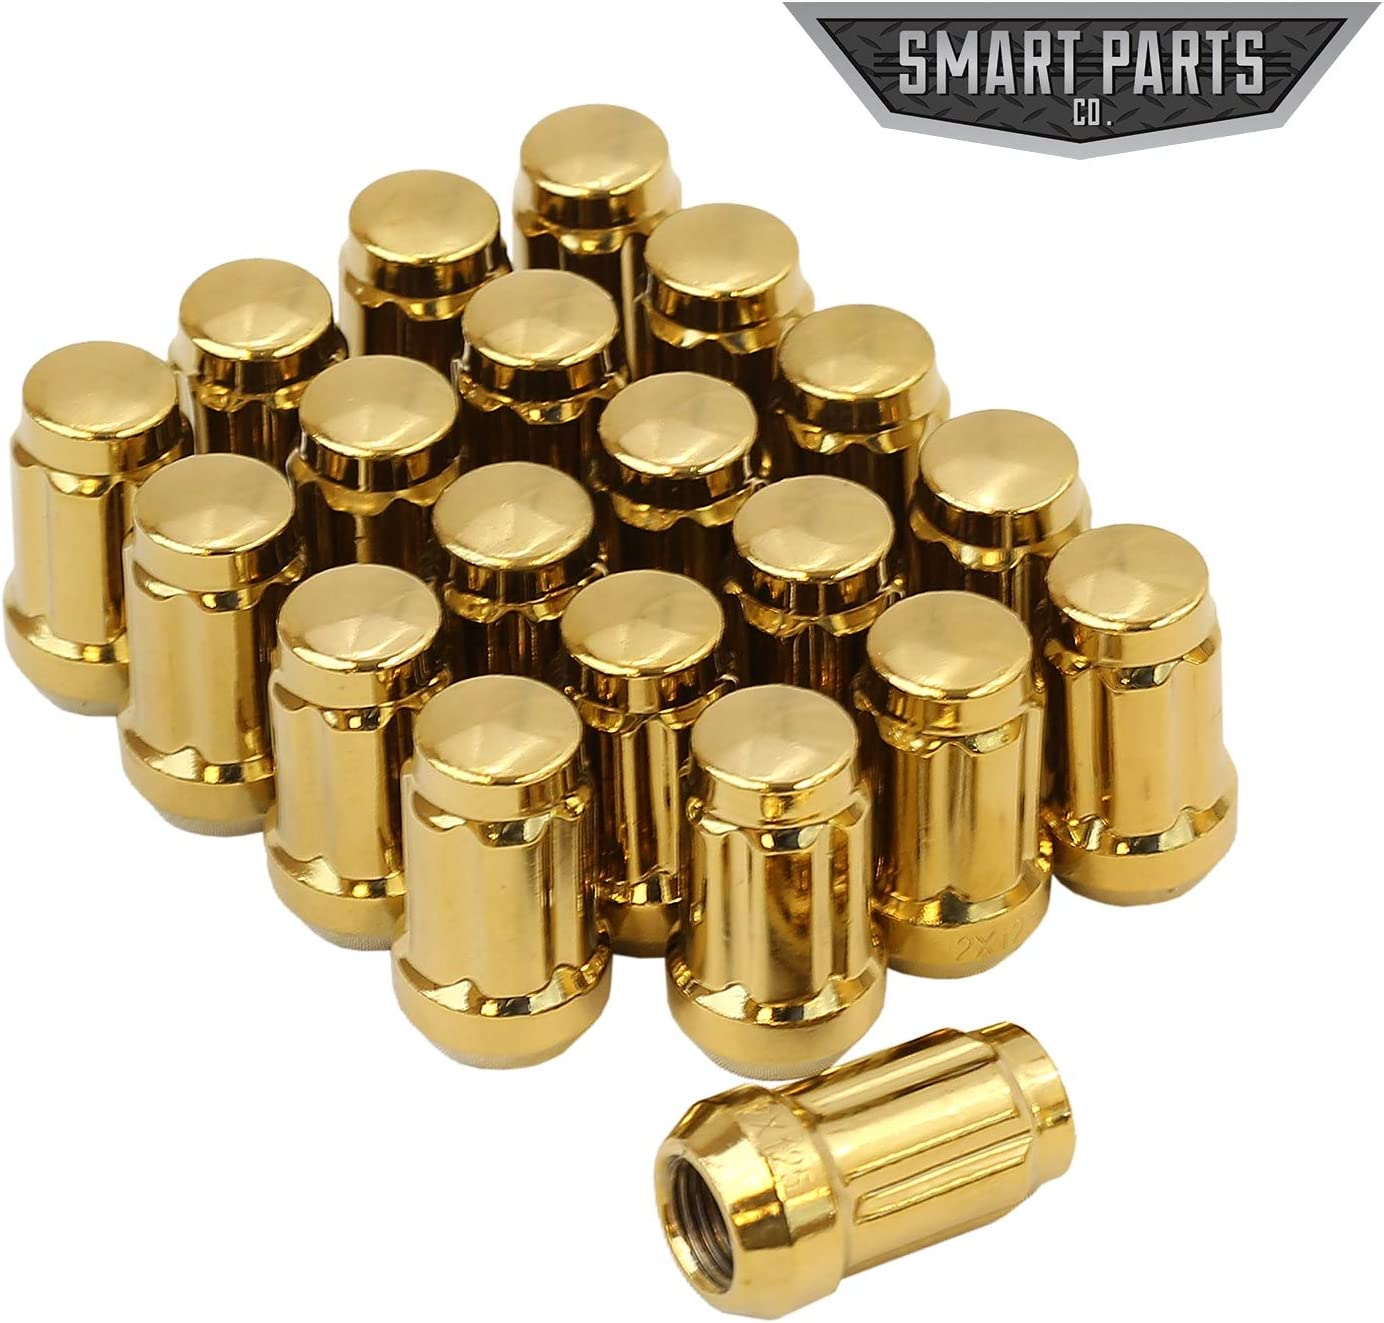 Smart Parts 20 PC 12x1.25 Neo Chrome Closed End Spline Drive Acorn Lug Nuts Key 1.4 Length